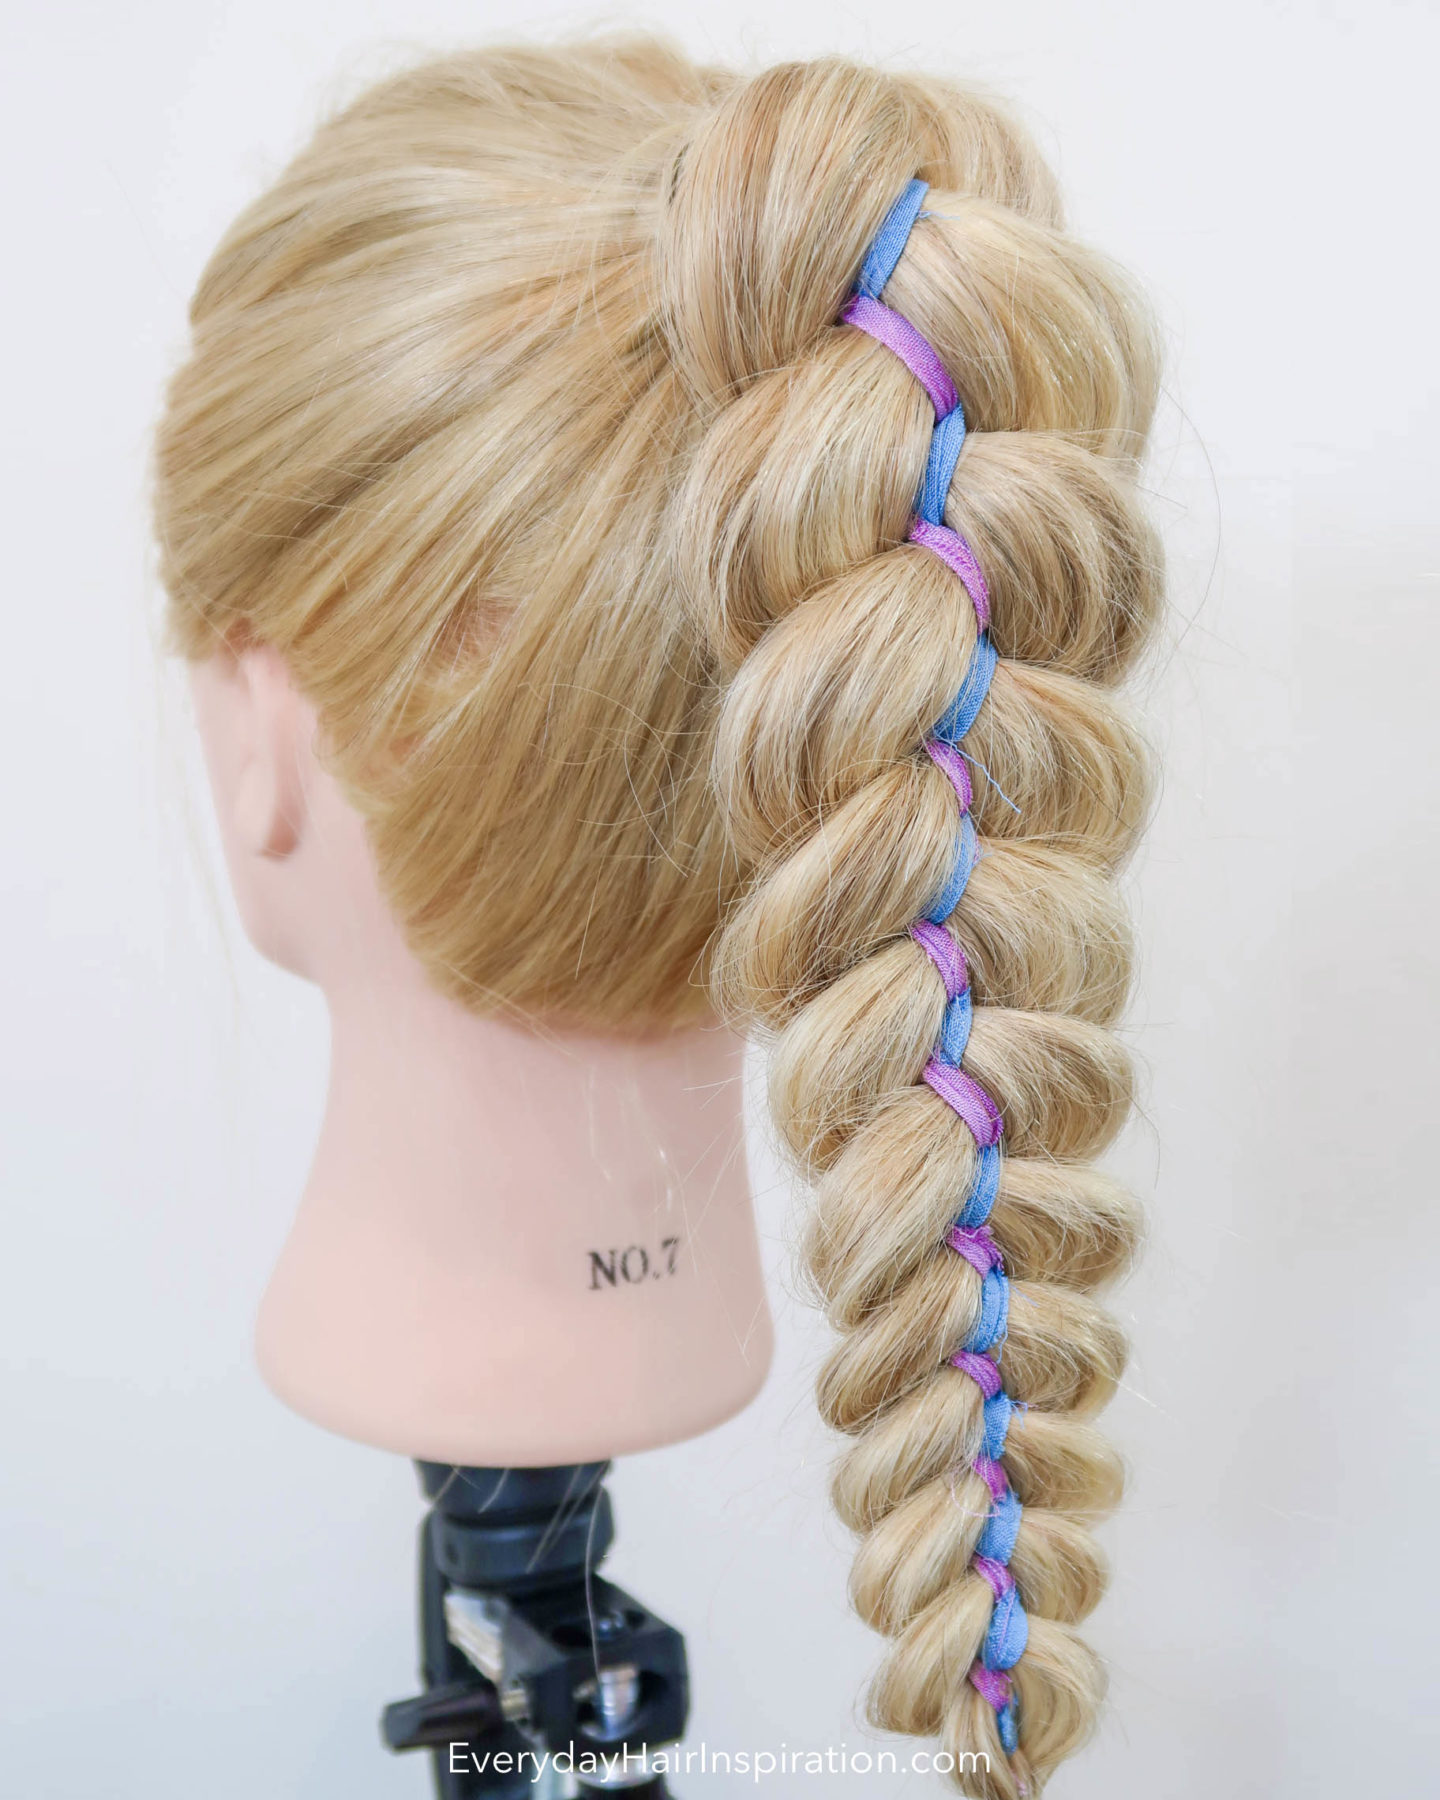 Blonde hairdresser doll with a high ponytail, in which there is a 5 strand ribbon braid, with purple and blue colored ribbon.